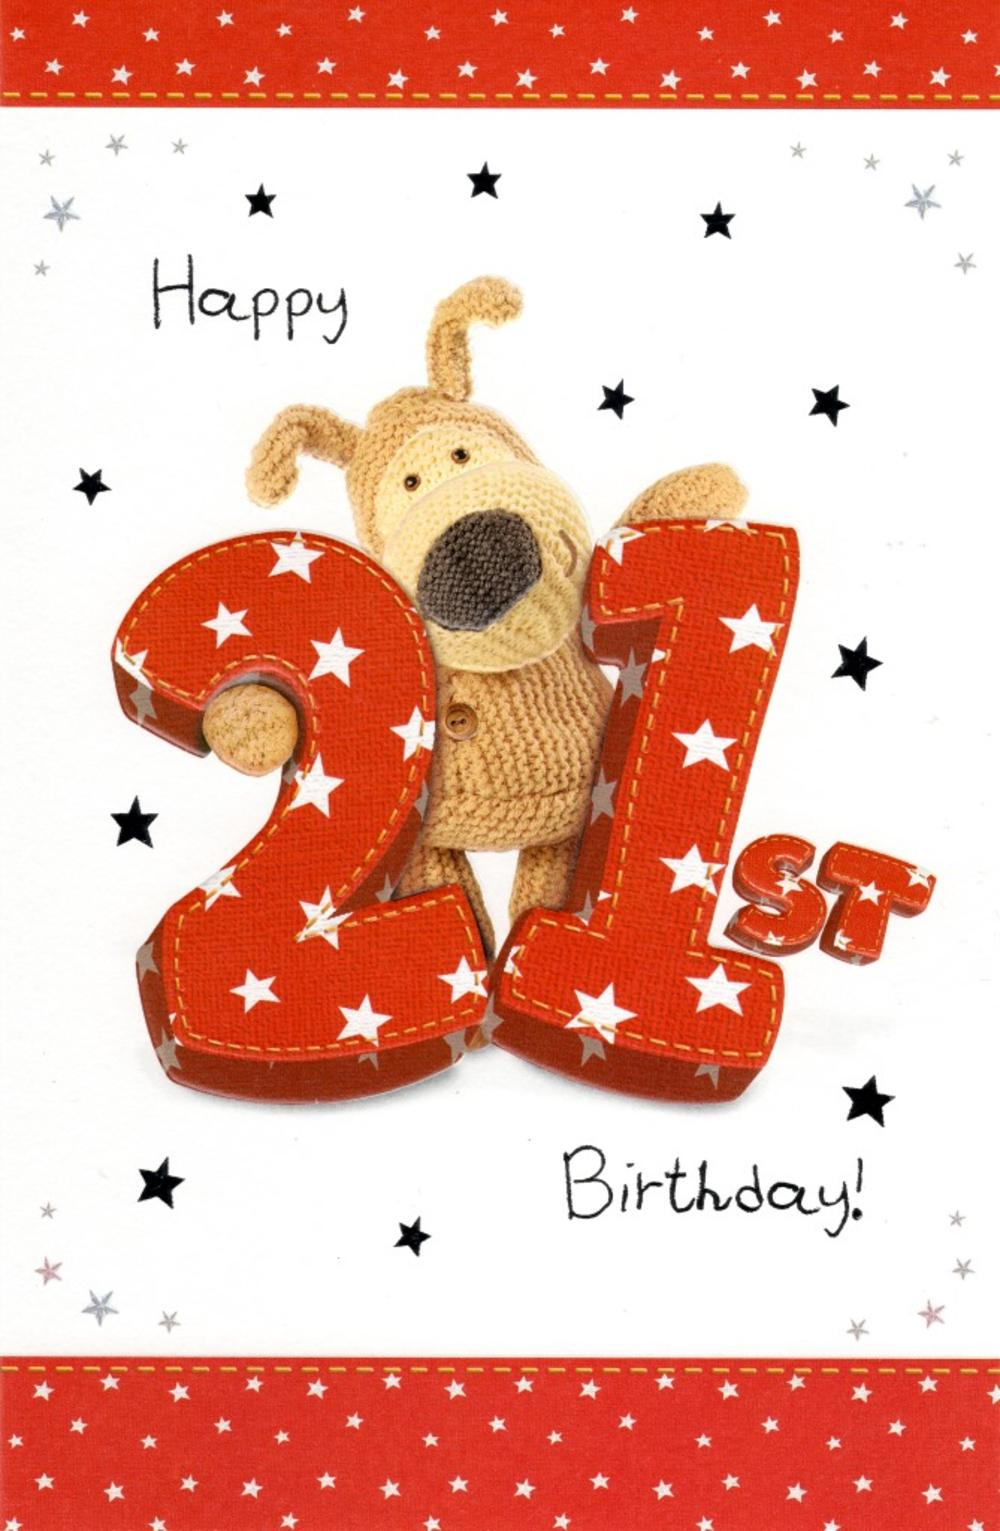 Boofle happy 21st birthday greeting card cards love kates boofle happy 21st birthday greeting card bookmarktalkfo Image collections